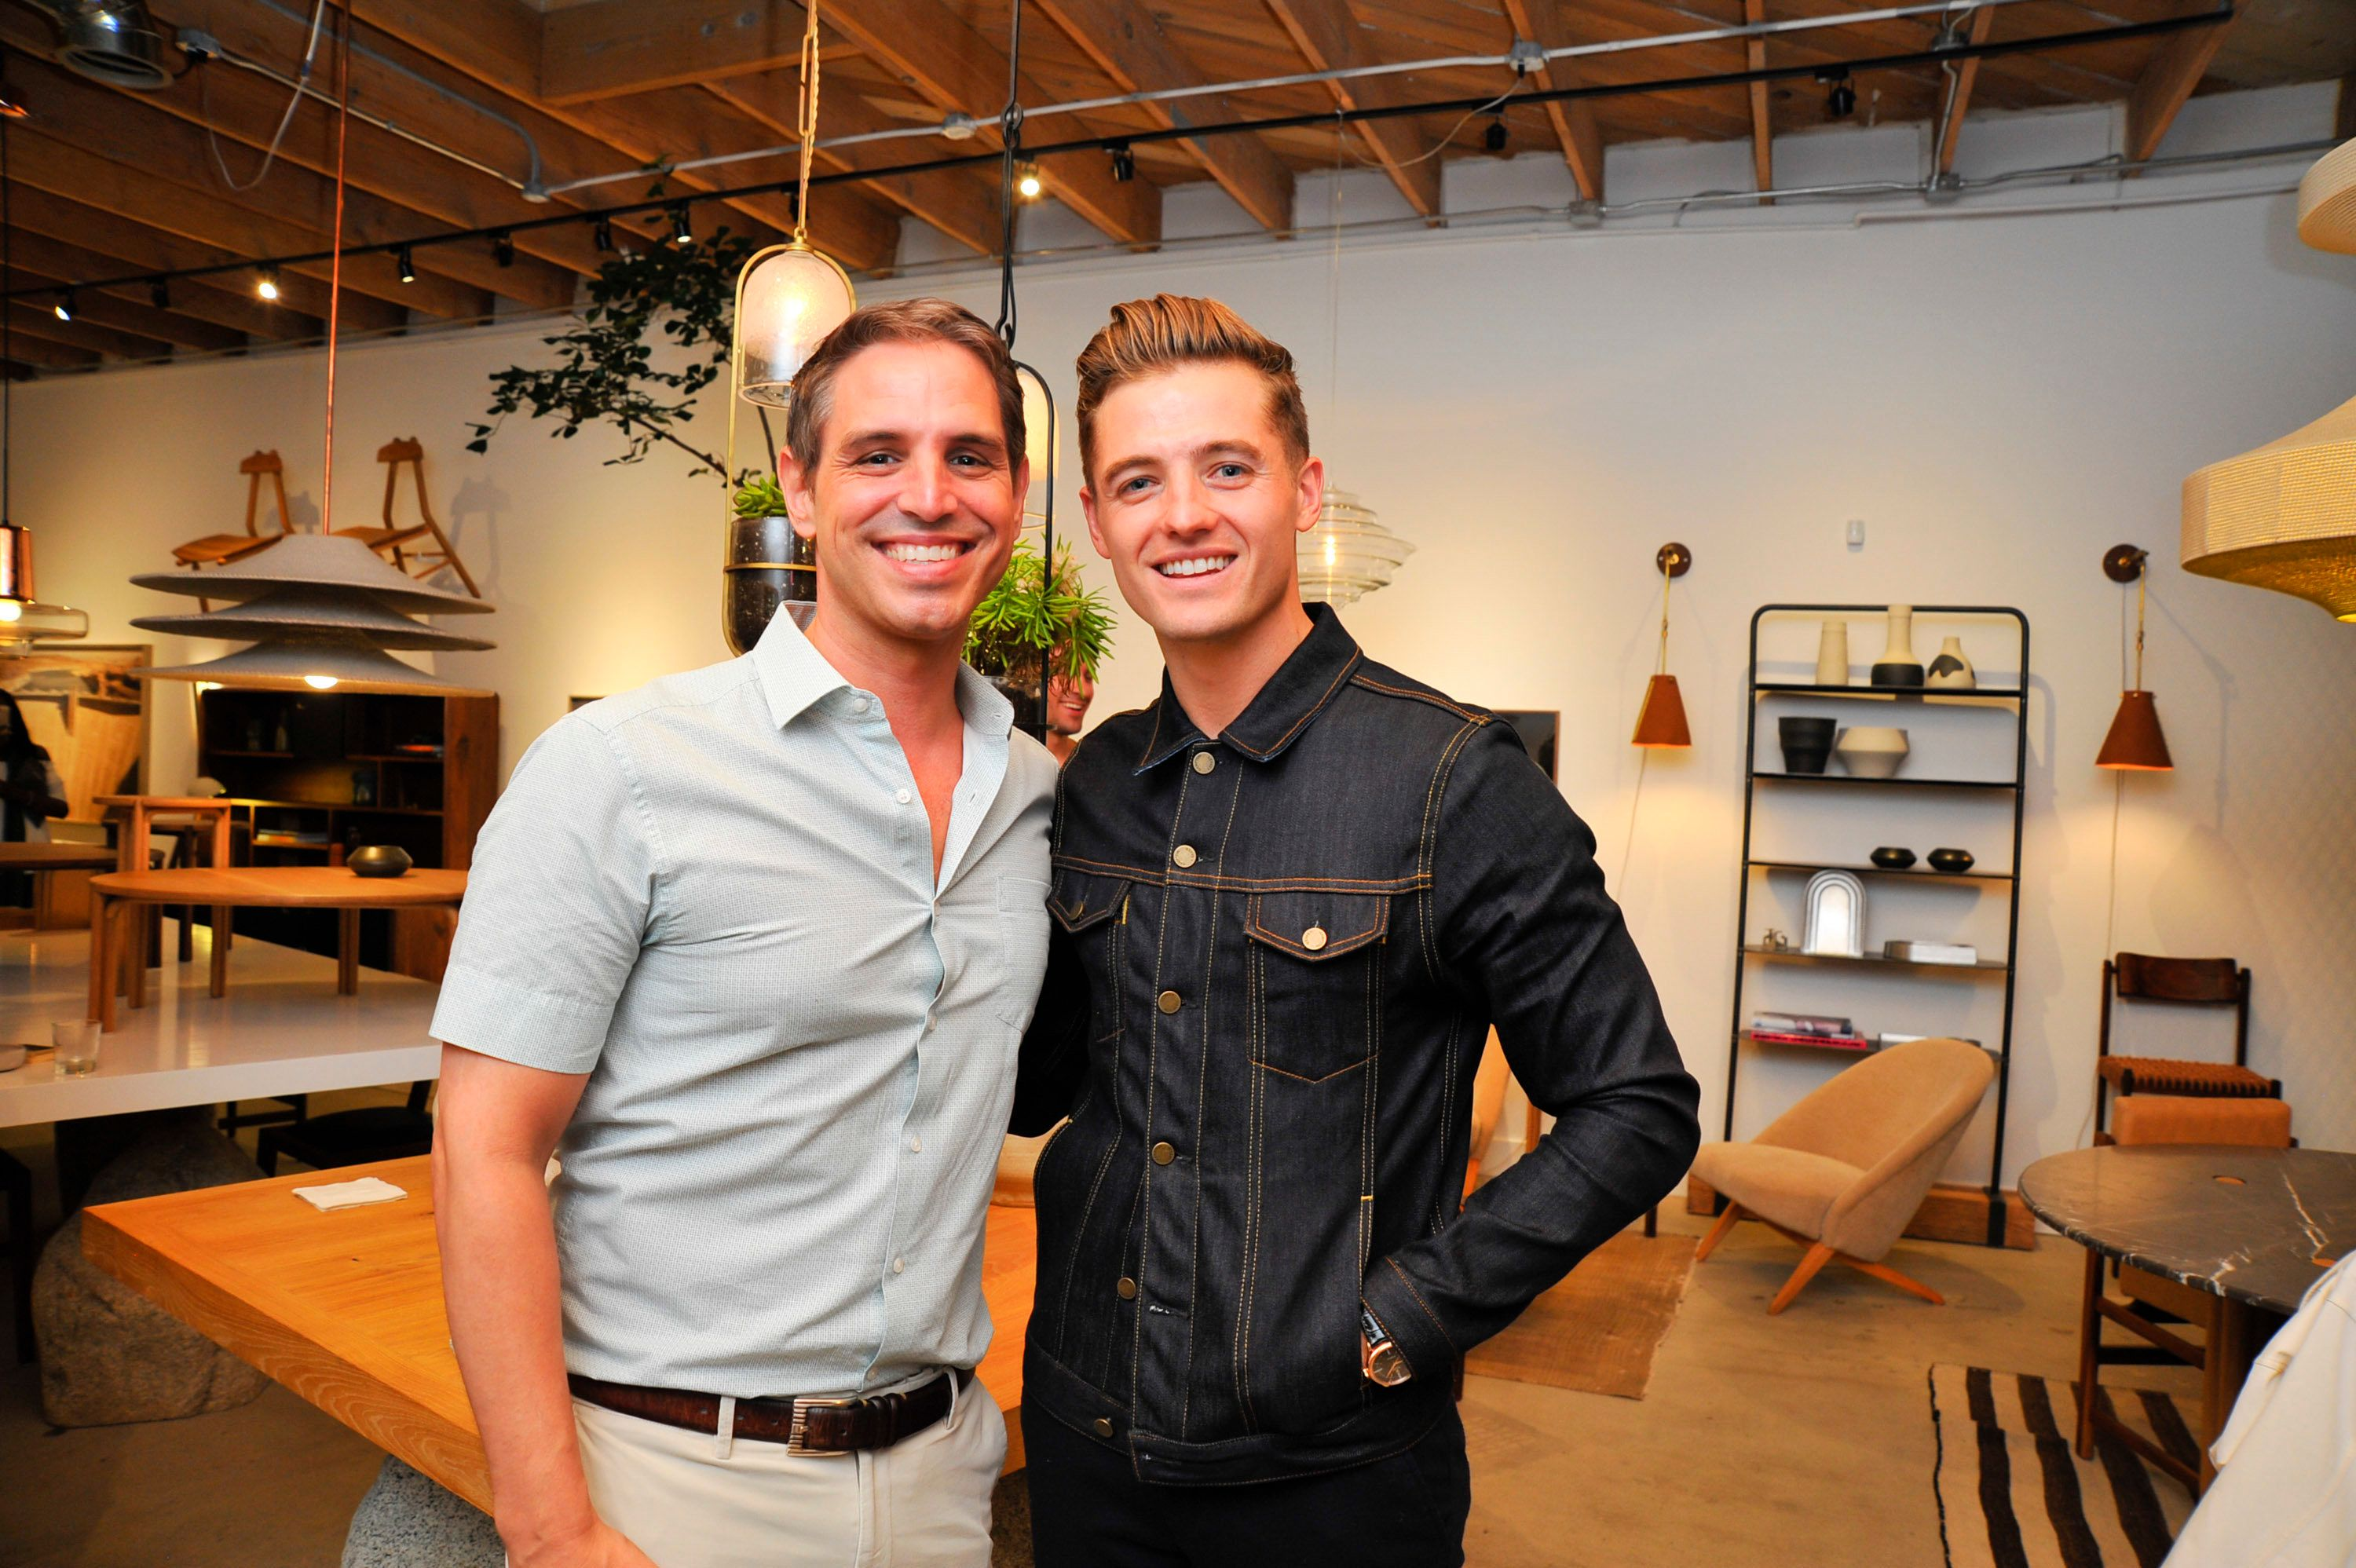 VENICE, CA - JULY 23:  Film writer Greg Berlanti and husband Professional soccer player Robbie Rogers attends Hampton + Baker Trunk Show and Fall Preview at Stahl and Band on July 23, 2016 in Venice, California.  (Photo by Lily Lawrence/Getty Images for Hampton + Baker)